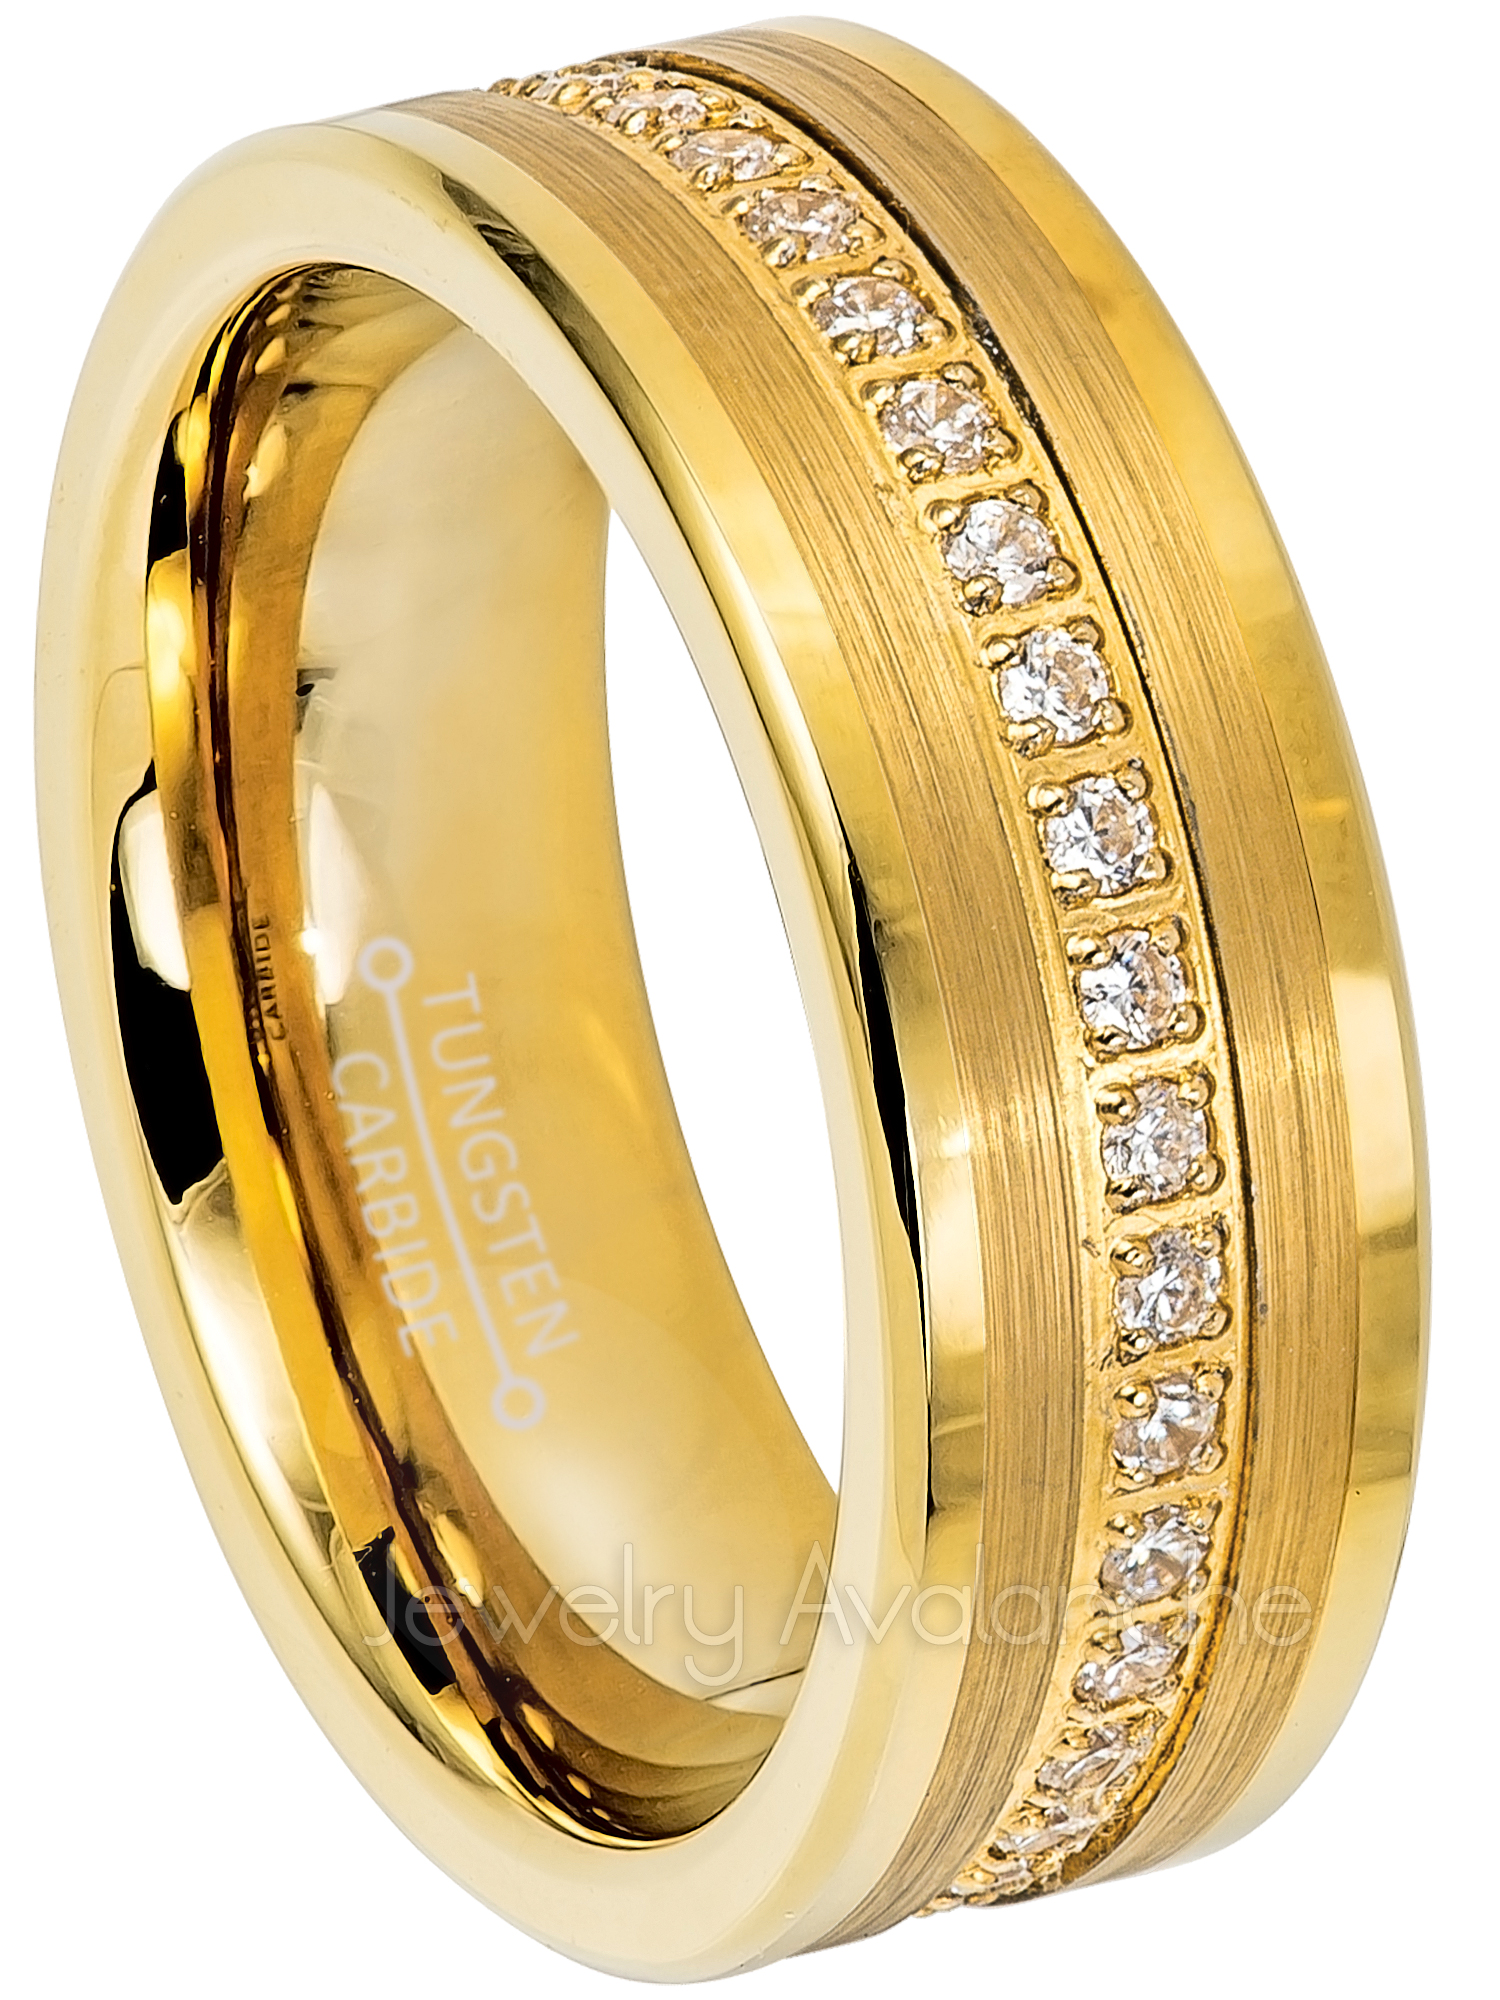 Tungsten Wedding Ring - Band for Mens 8mm Yellow Gold Plated Tungsten Eternity Ring CZ Accented - Comfort Fit Pipe Cut Tungsten Carbide Ring - TN776s7